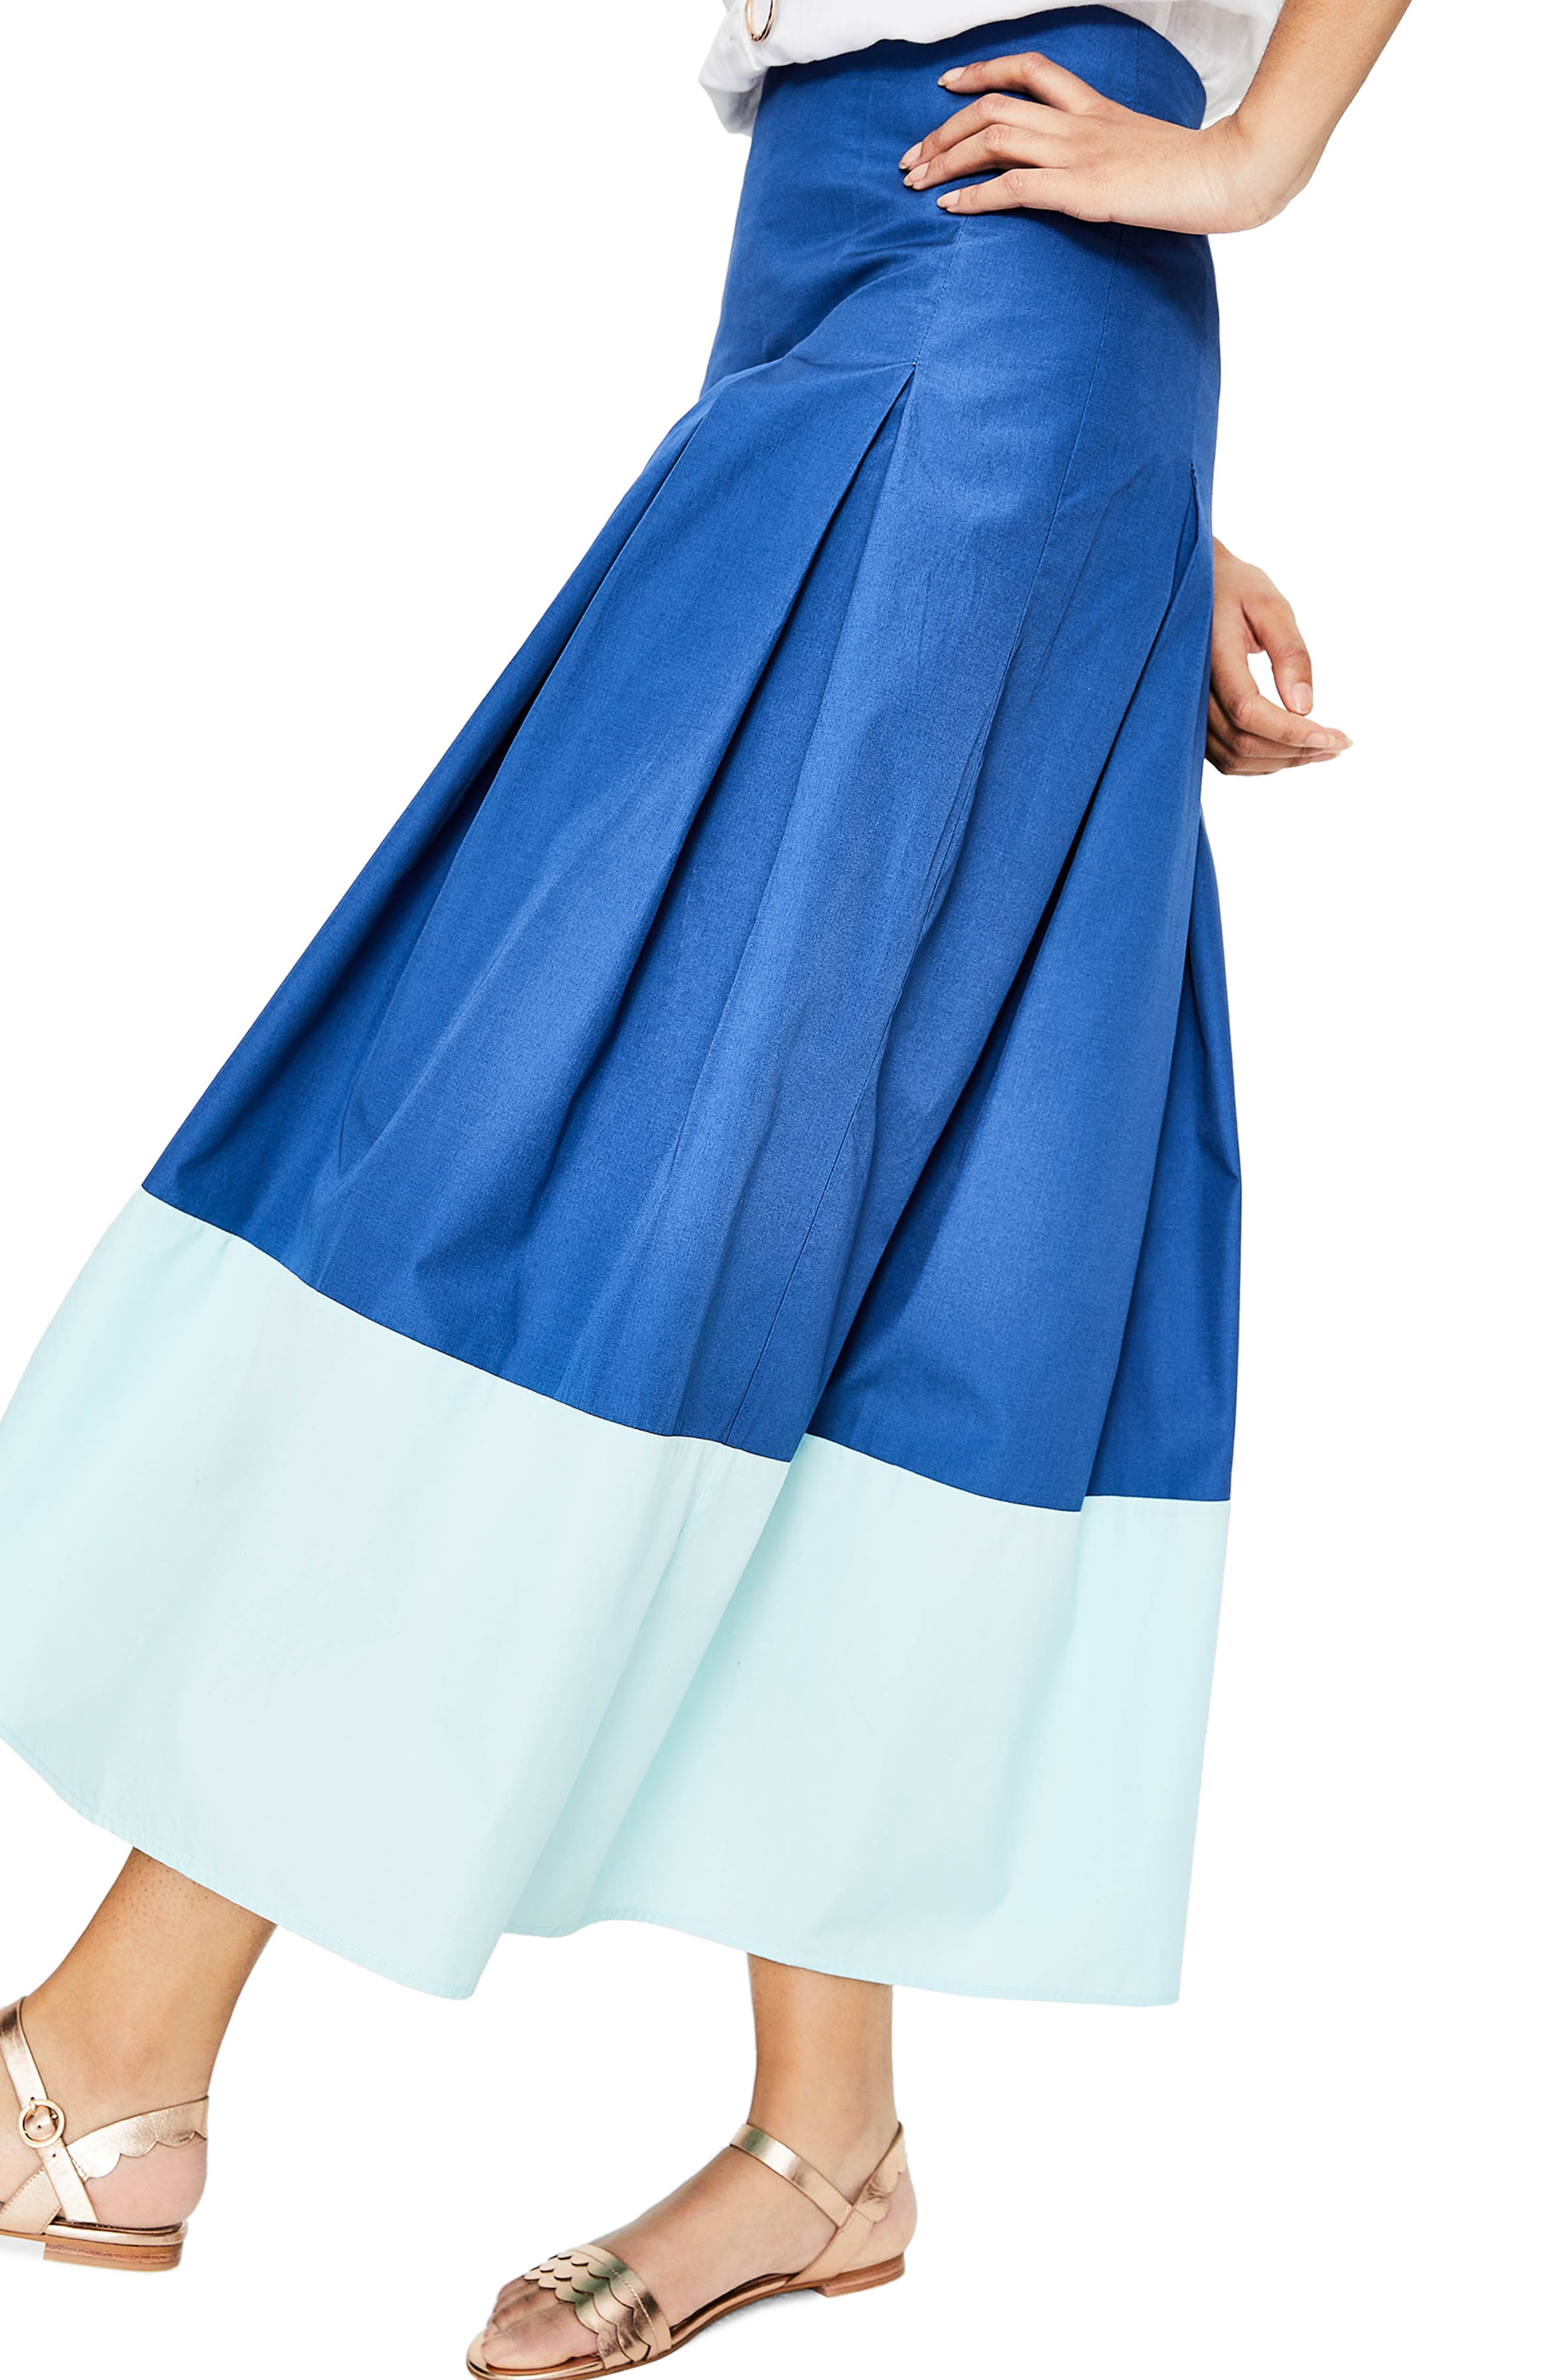 Beatrice Flare Midi Skirt,                             Alternate thumbnail 3, color,                             Riviera Blue W Rippl